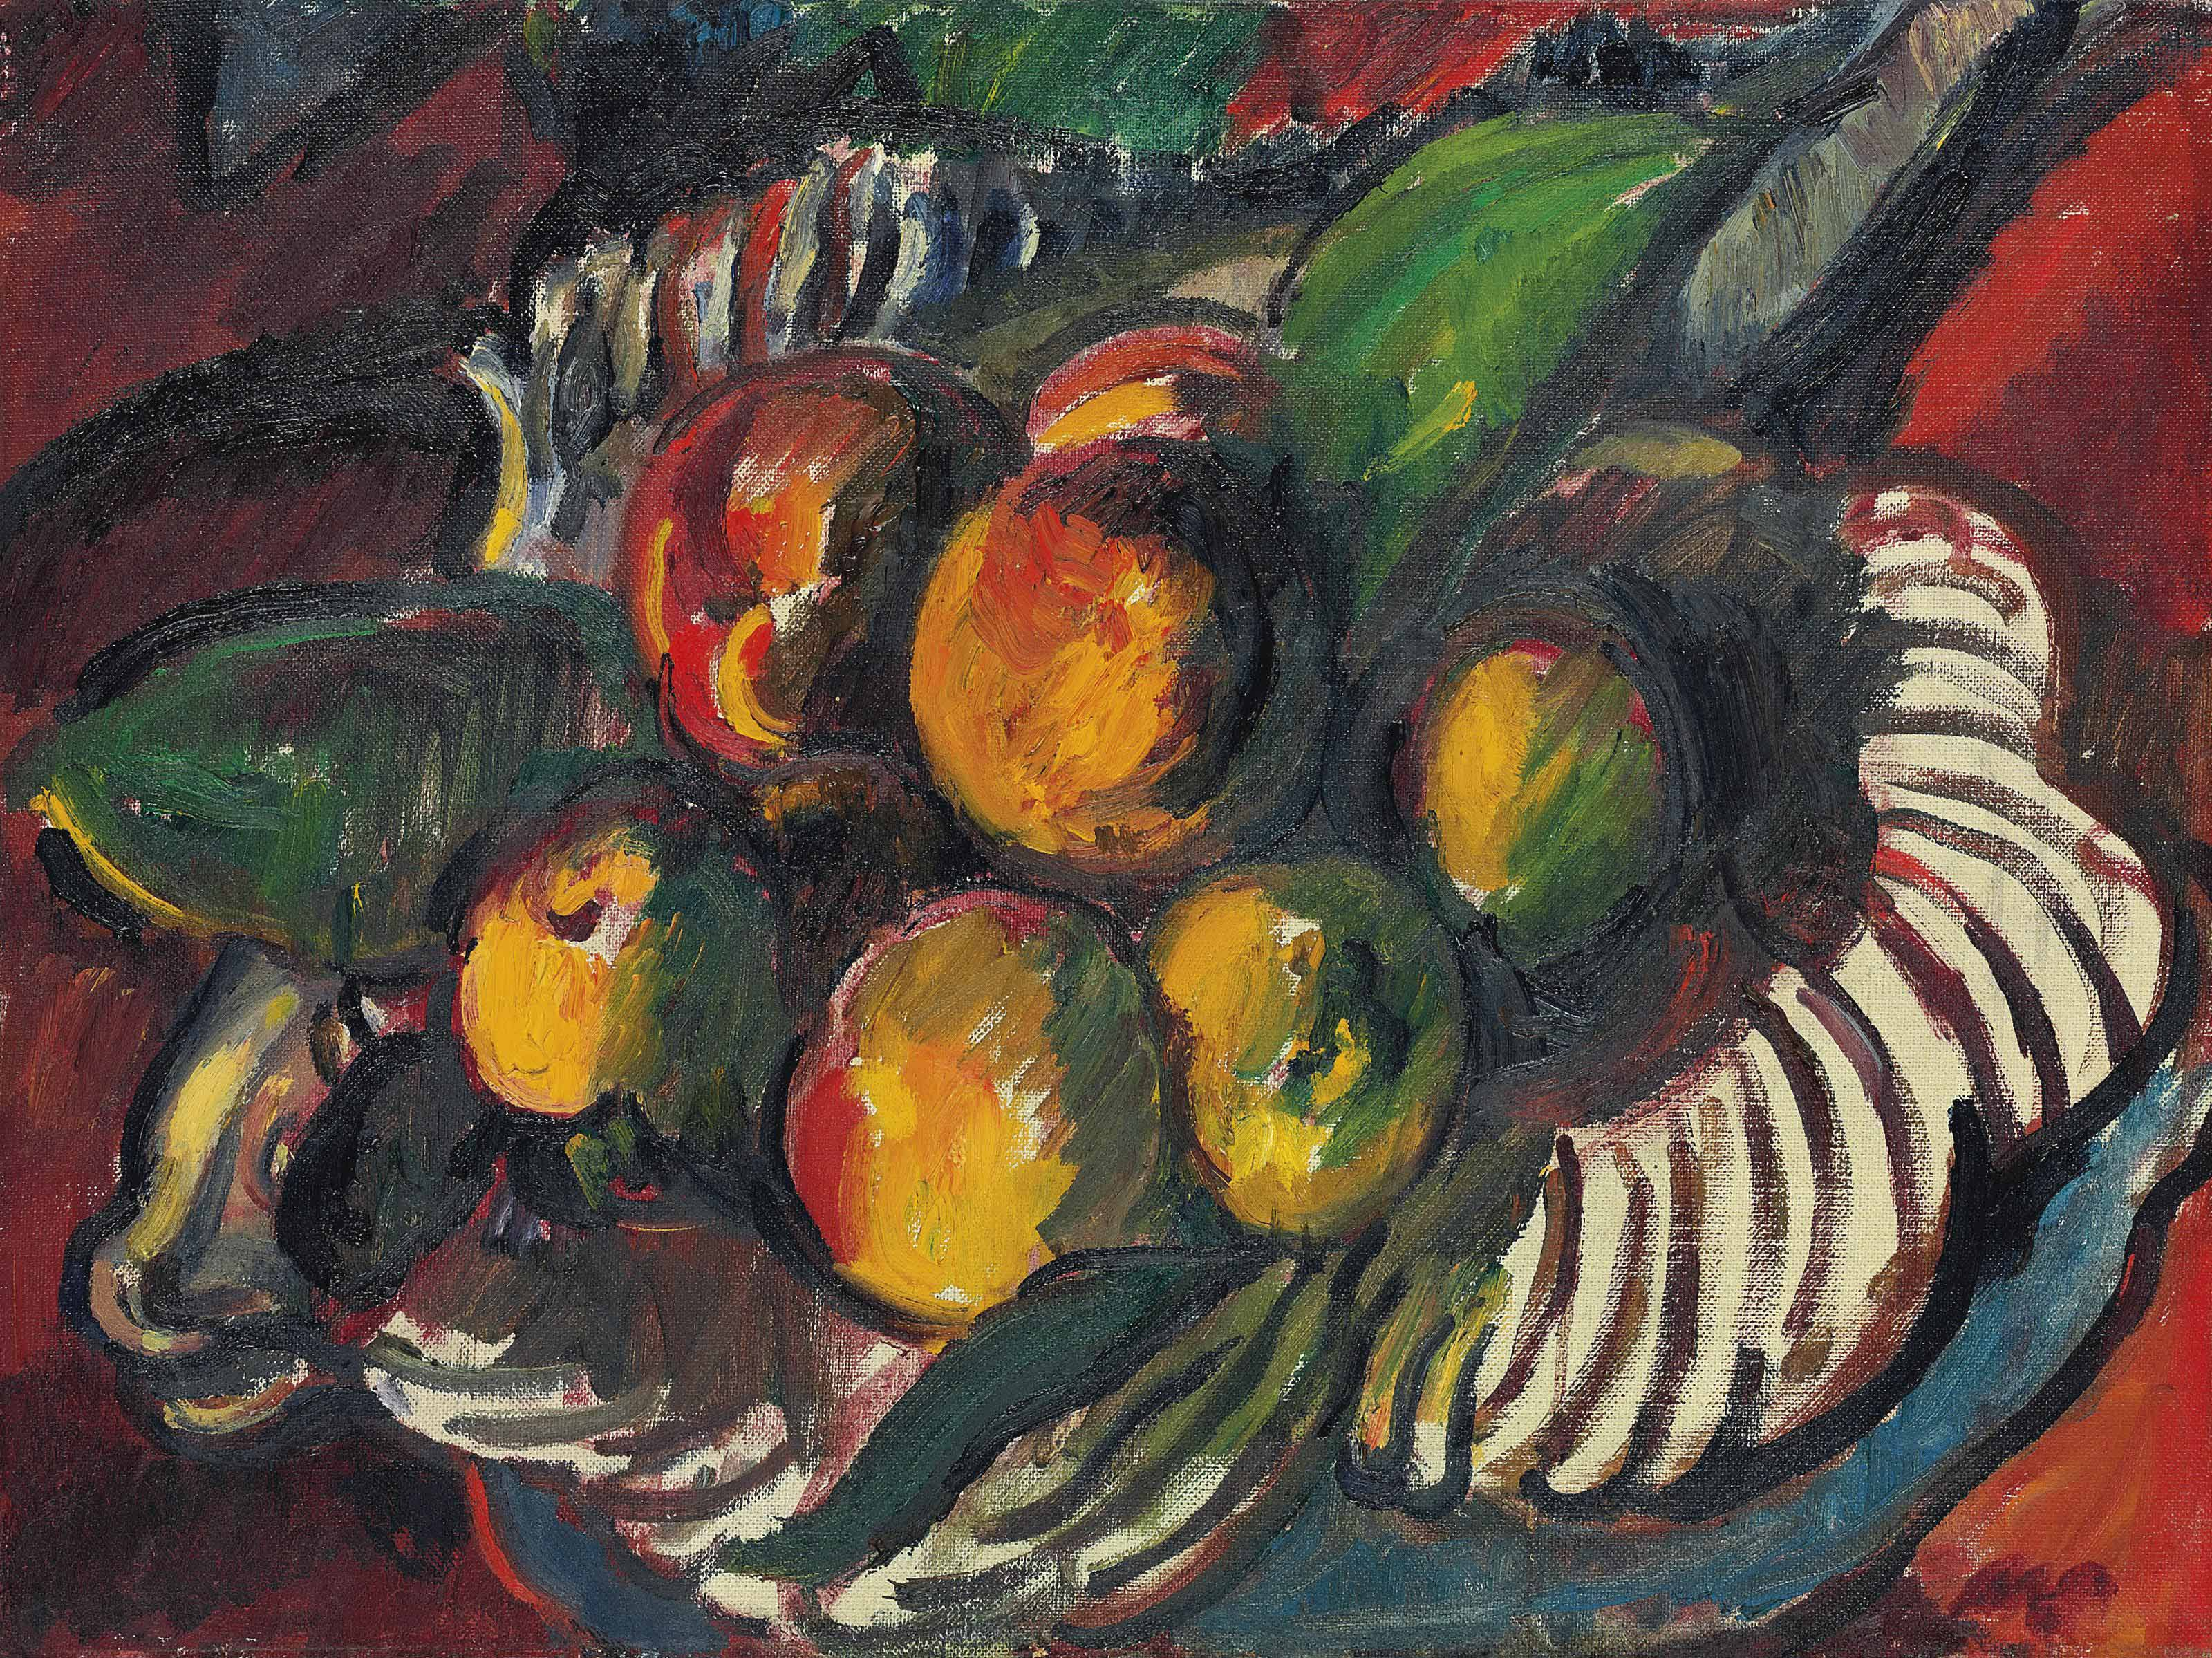 Apples and pears in a striped bowl